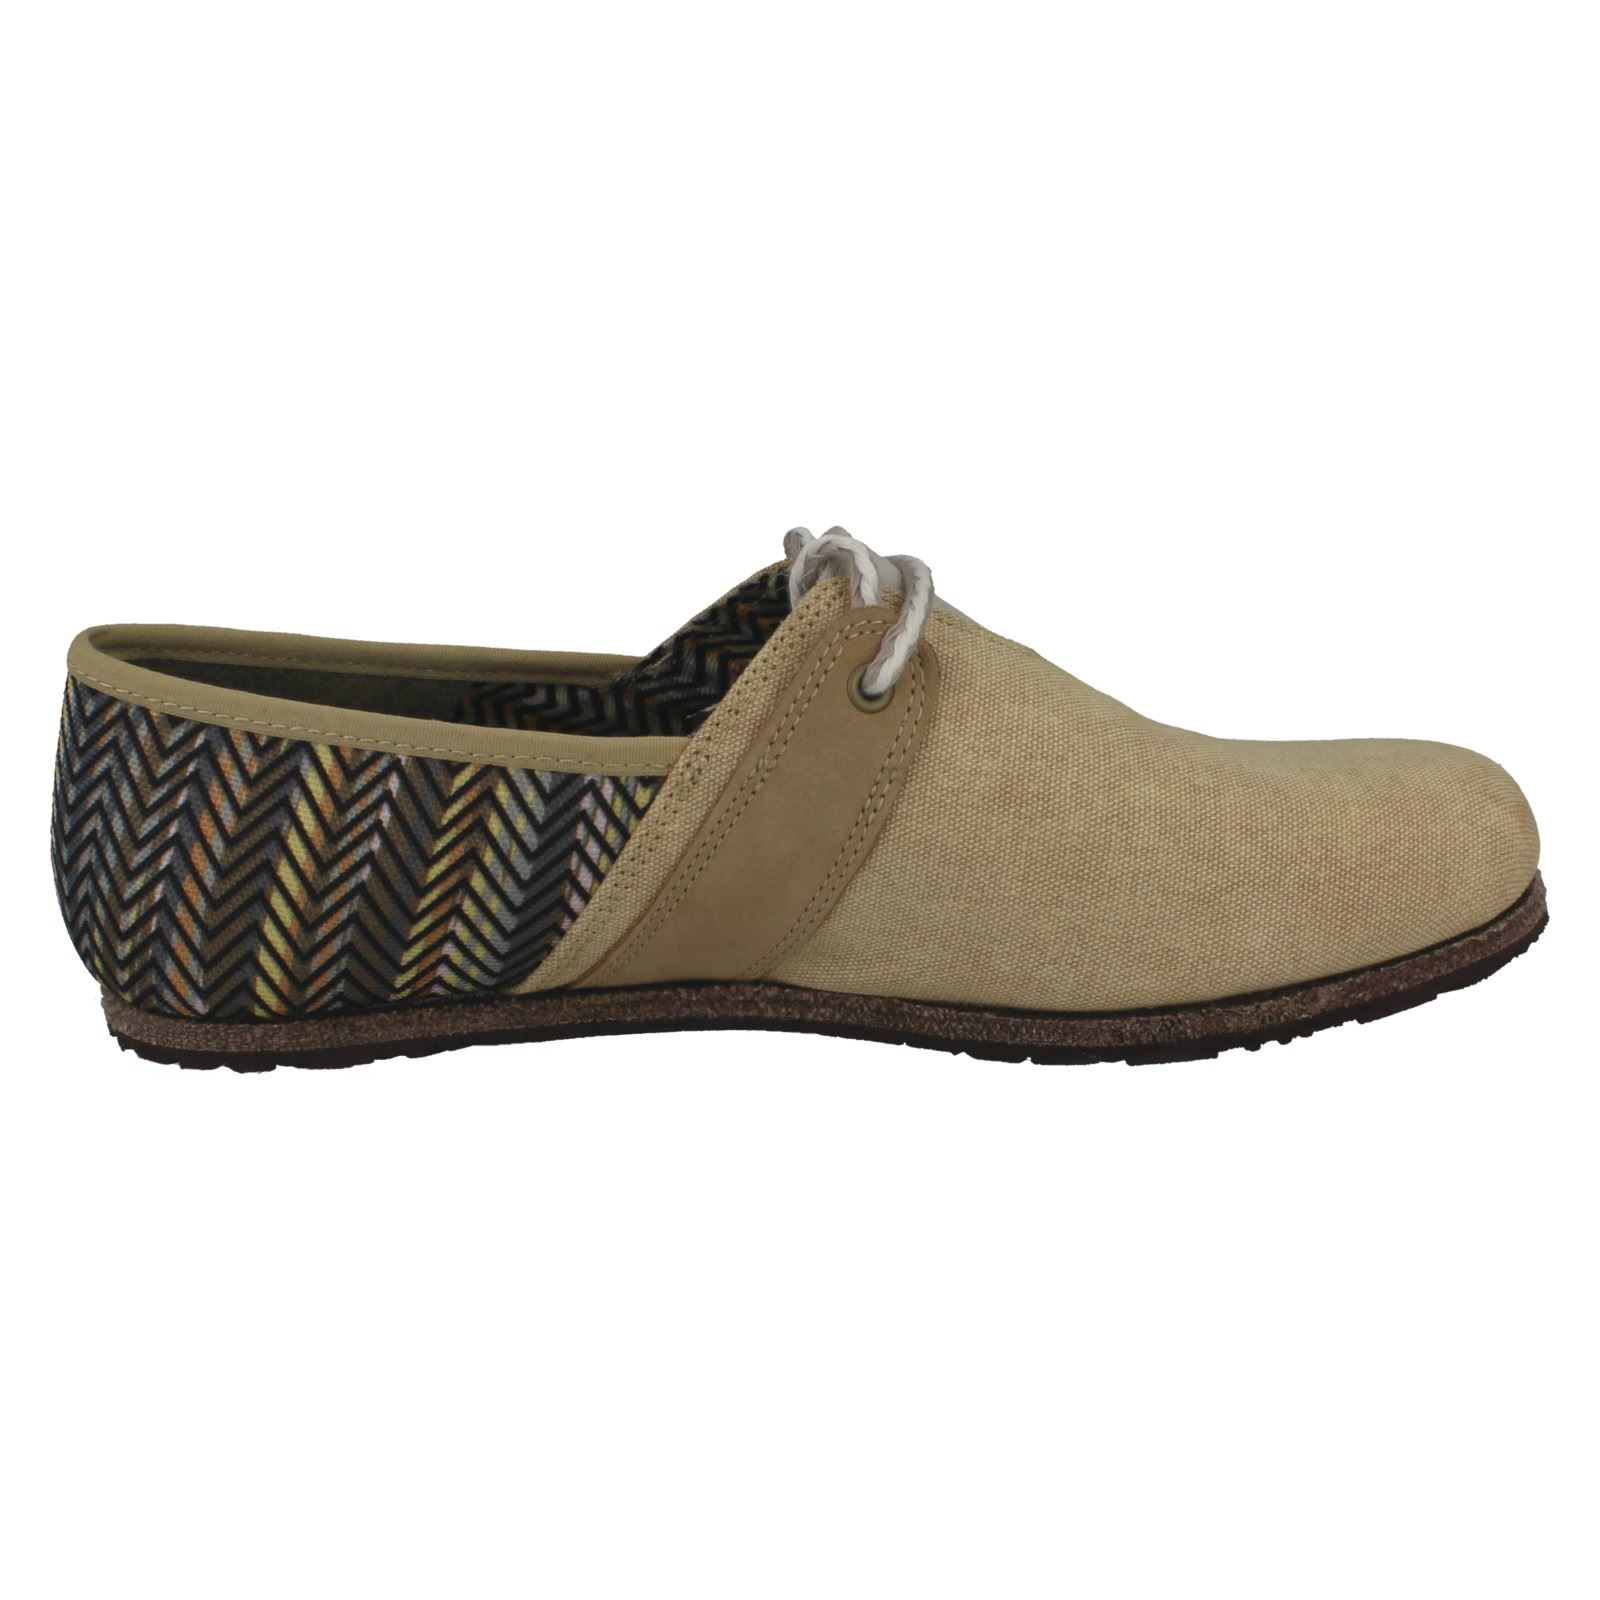 Ladies-Merrell-Casual-Flat-Shoes-Artemisia thumbnail 8